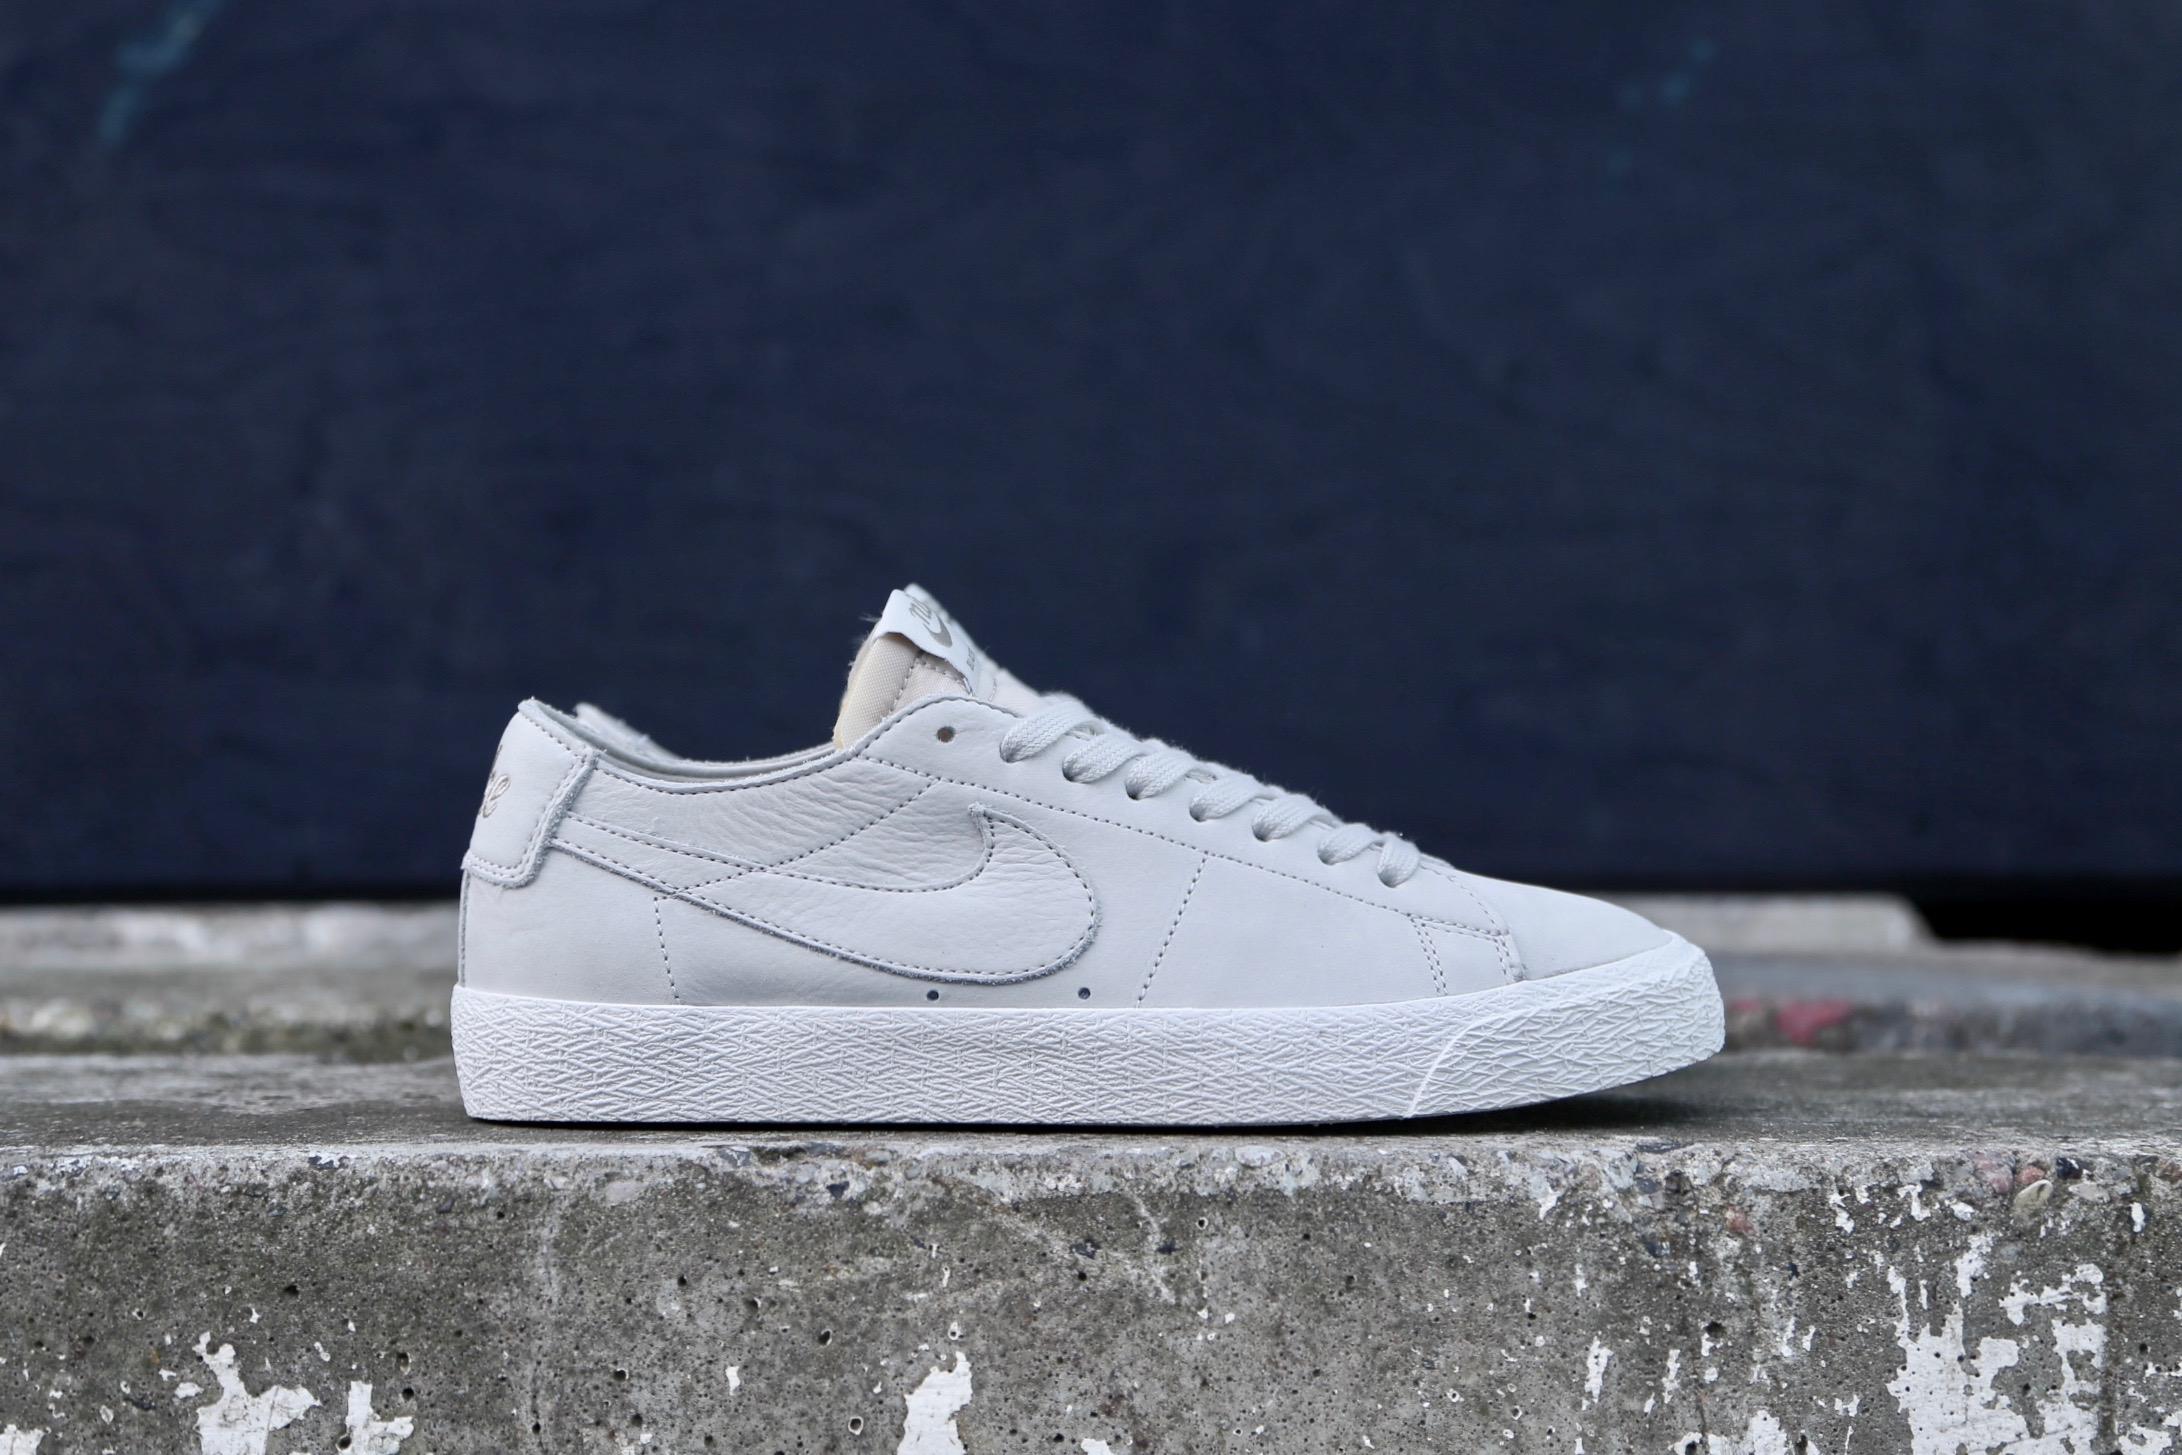 san francisco 4eca1 b5ca3 Nike SB Zoom Blazer Low Decon – Light Bone   Khaki – STASP